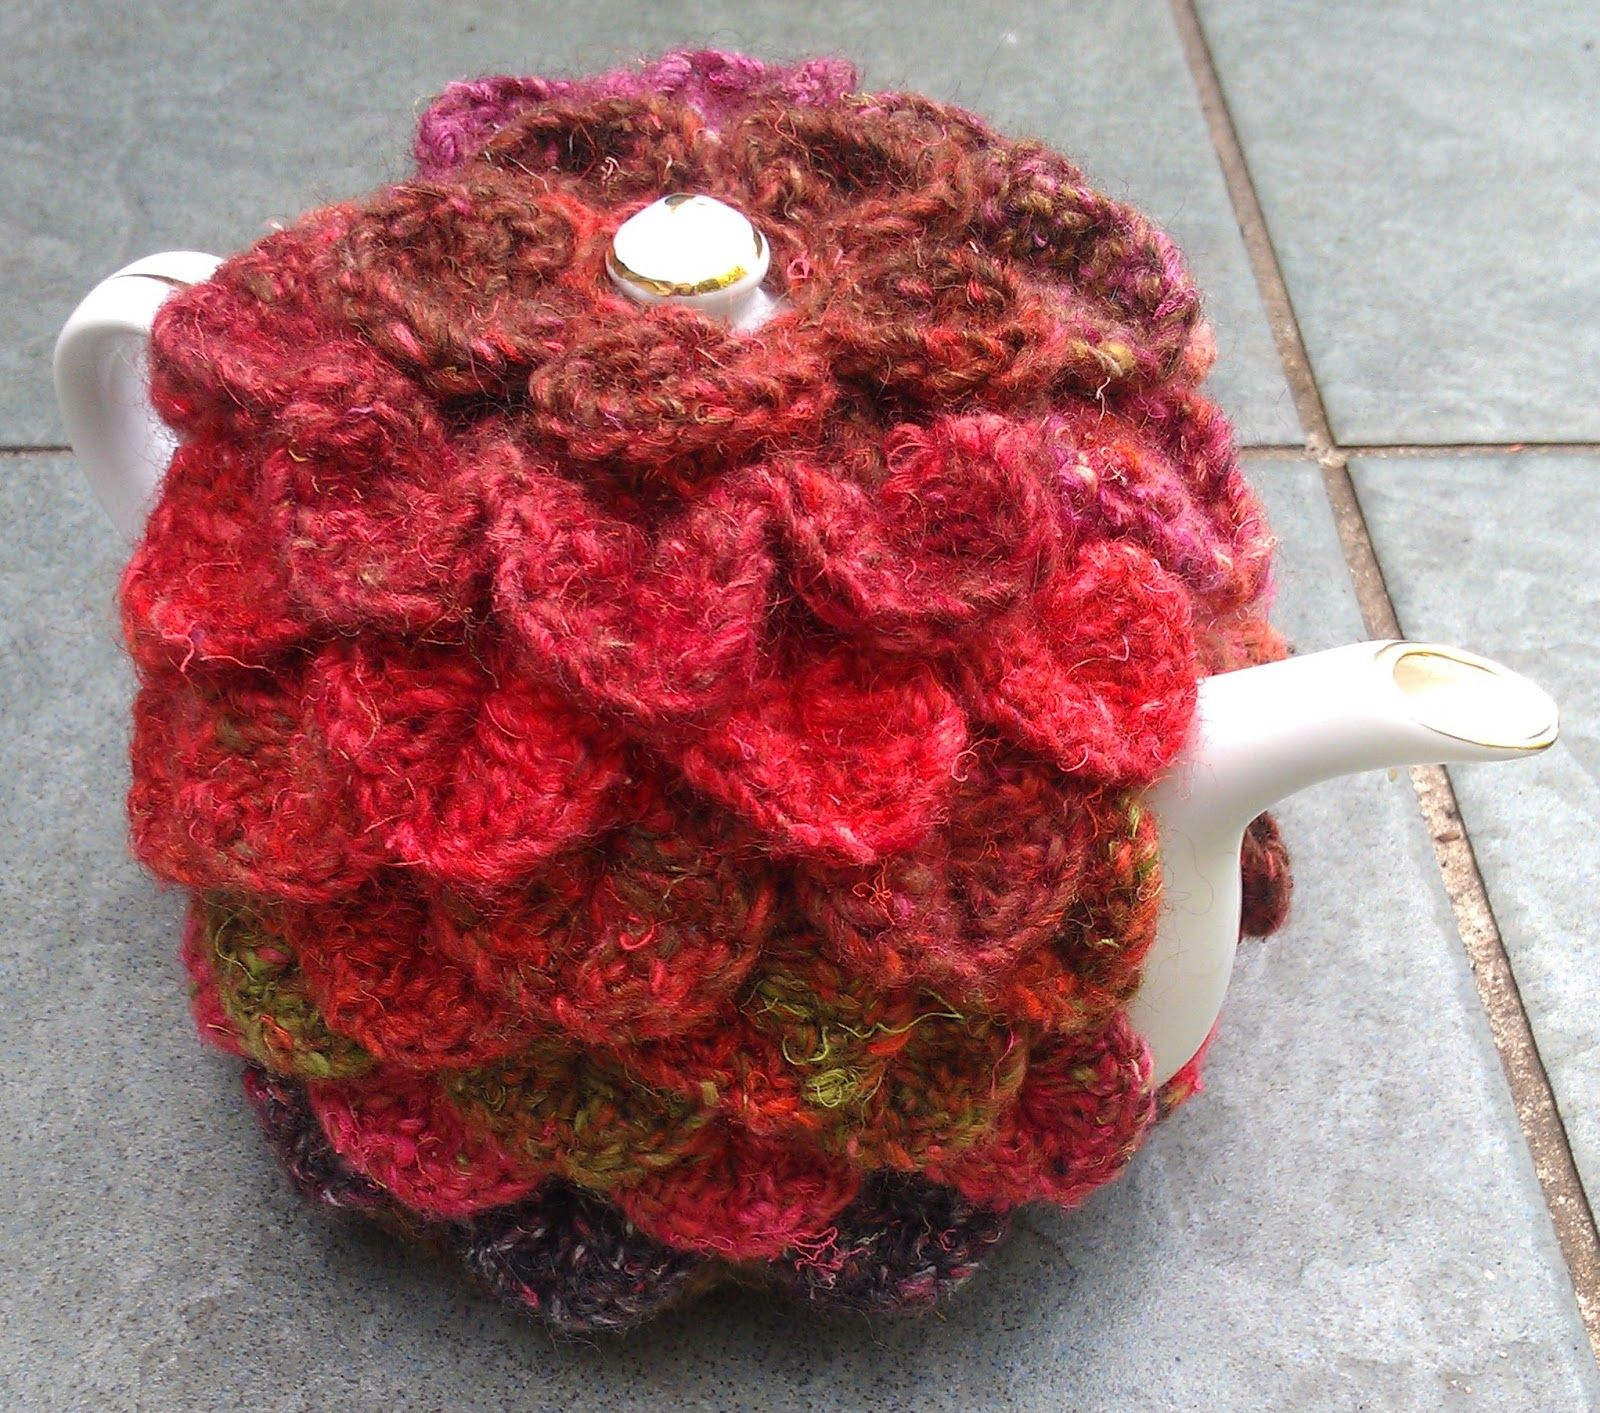 Craft a cure for cancer free tea cosy patterns crochet tea cosies craft a cure for cancer free tea cosy patterns crochet tea cosies more bankloansurffo Images